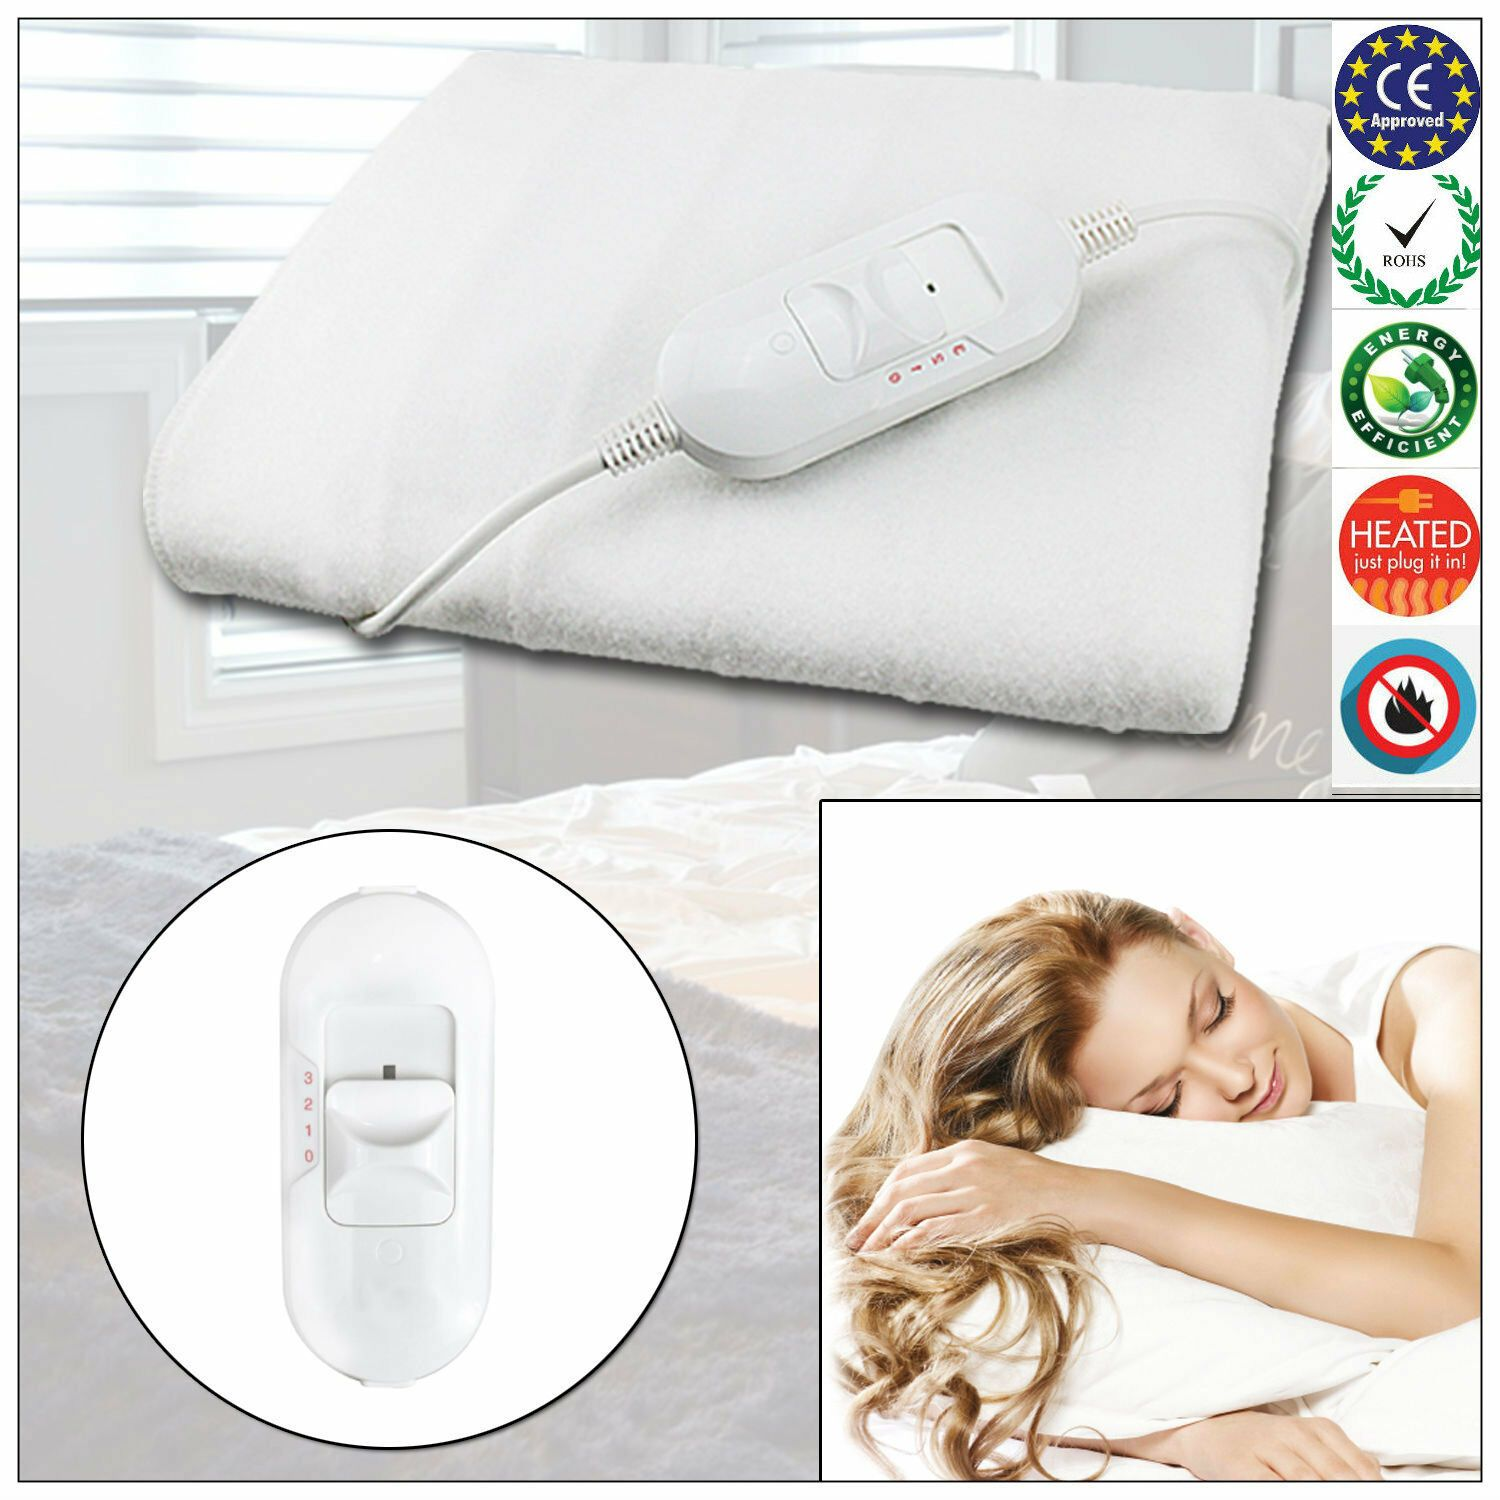 Details About Electric Blanket Heated Washable Fleece Under Luxury Single Double King Size Bed In 2020 Heated Blanket Double King Size Bed Shabby Chic Duvet